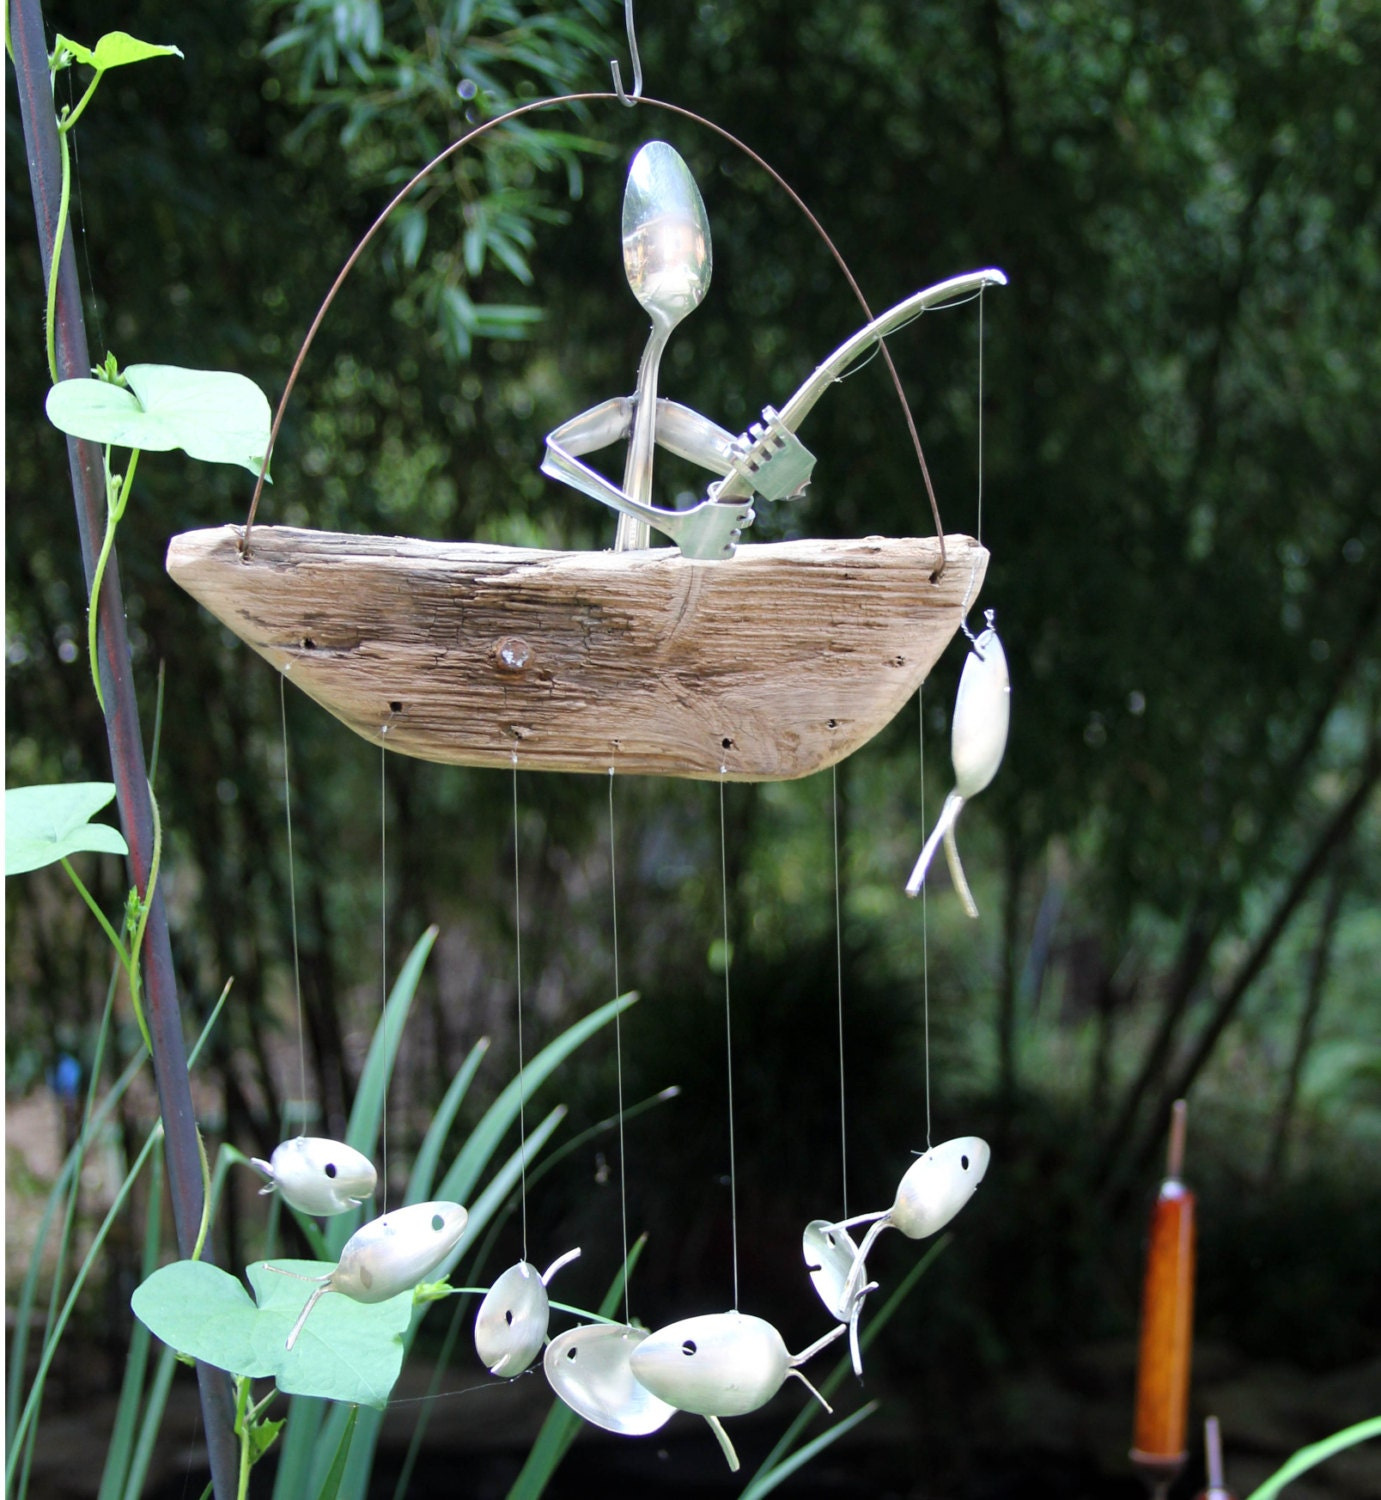 Spoon man driftwood boat and spoon fish wind chimegarden wind for Fish wind chimes